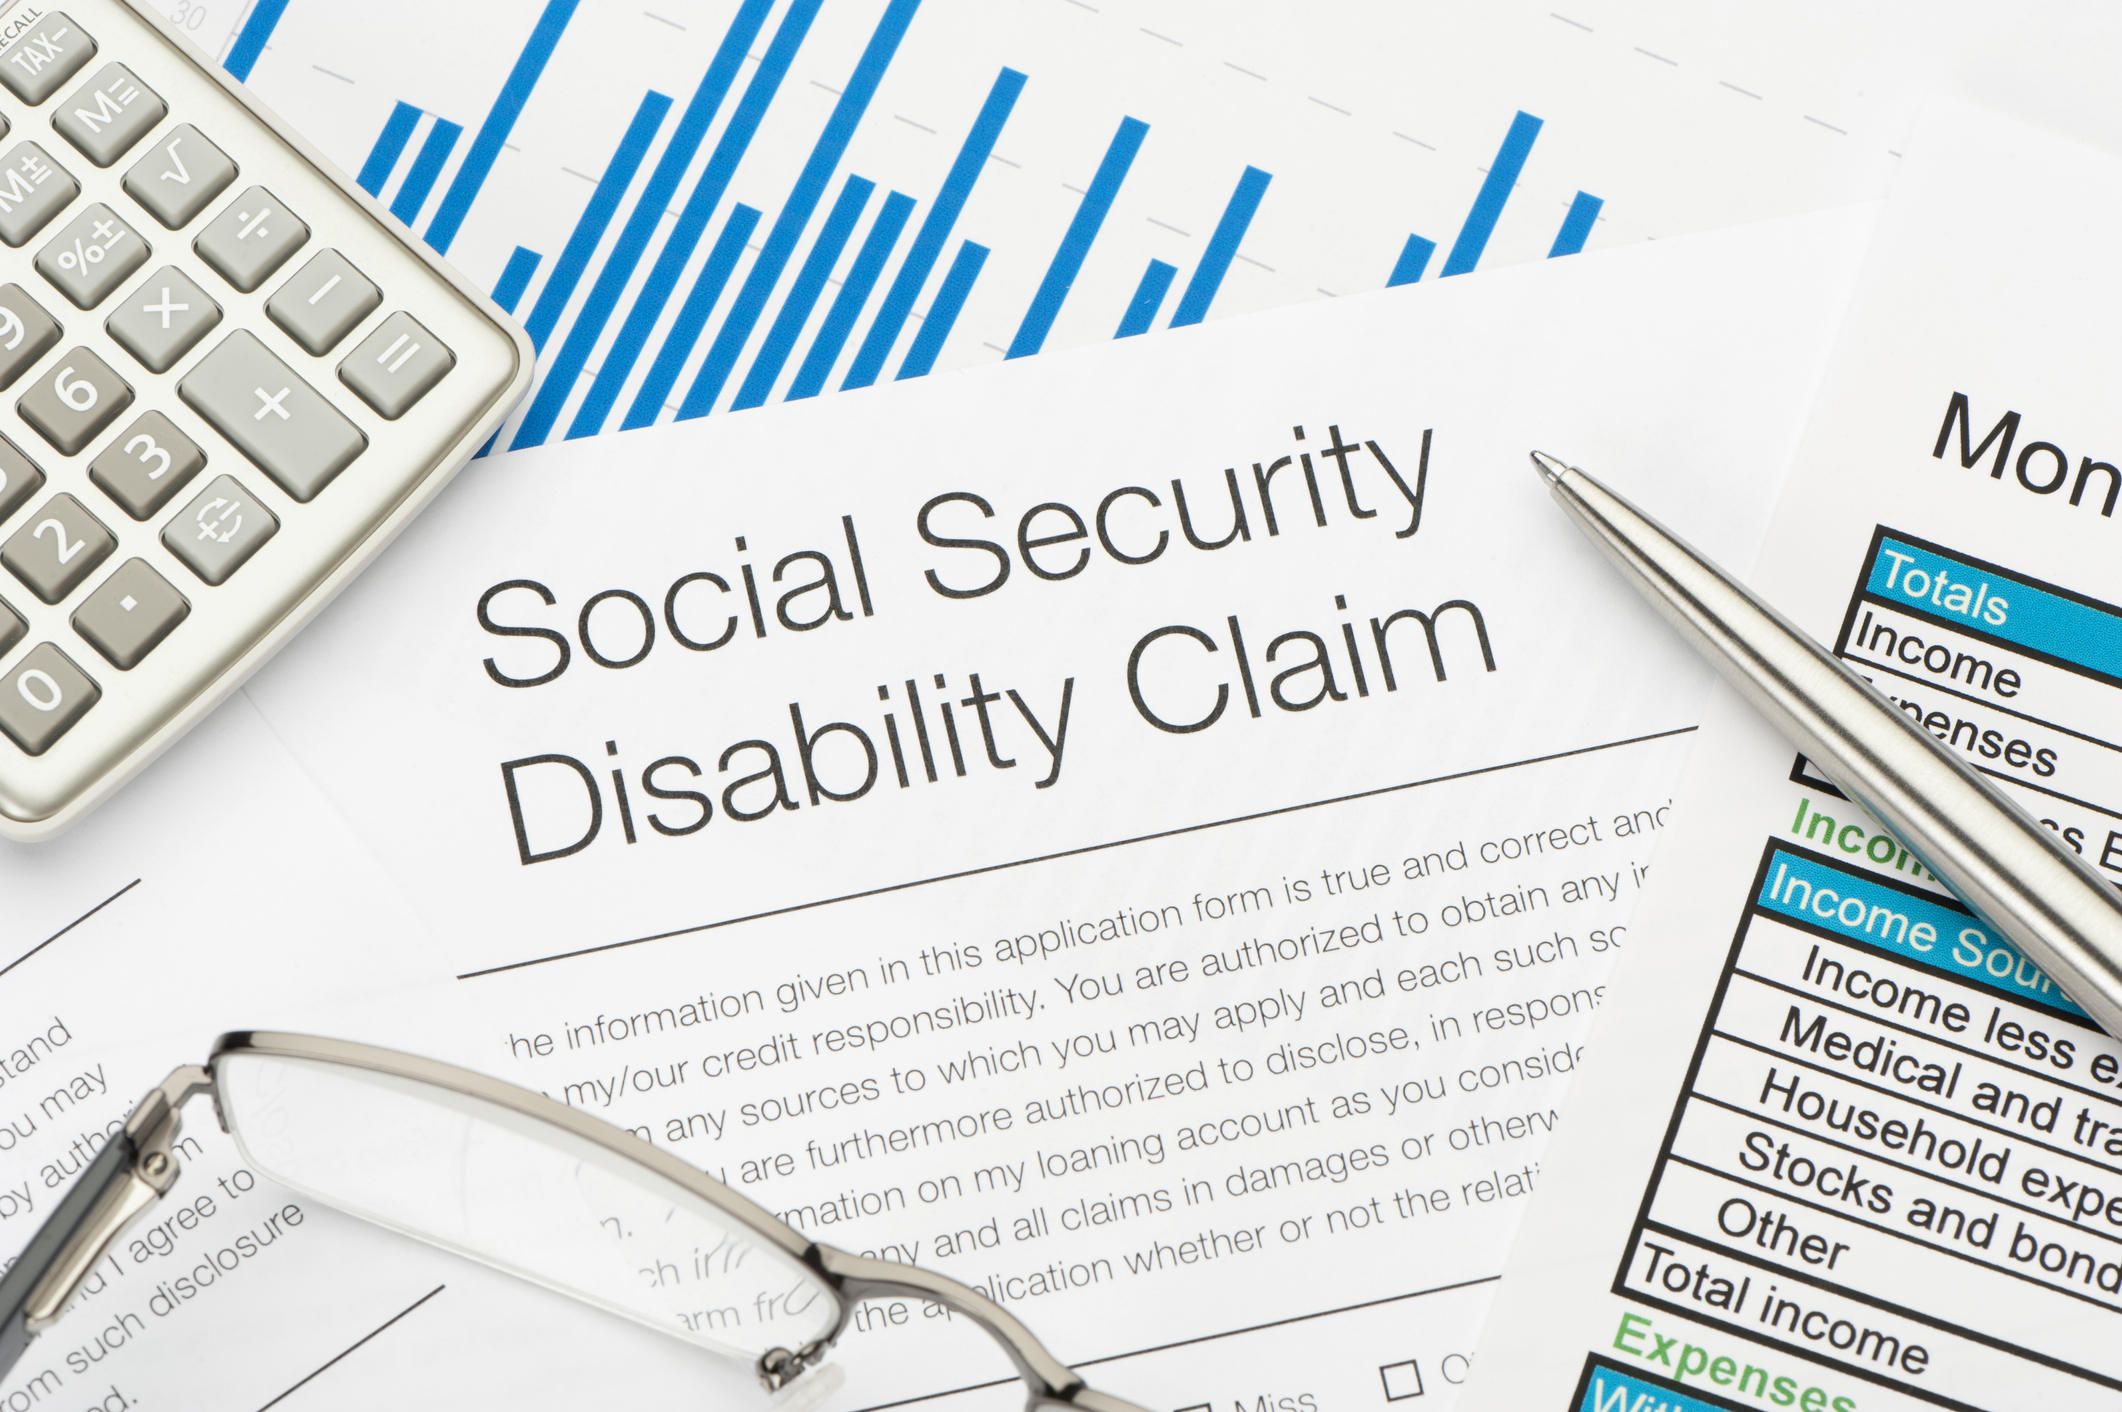 The Disability Law Group discusses whether or not your social security disability benefits would cancel if you have a job.